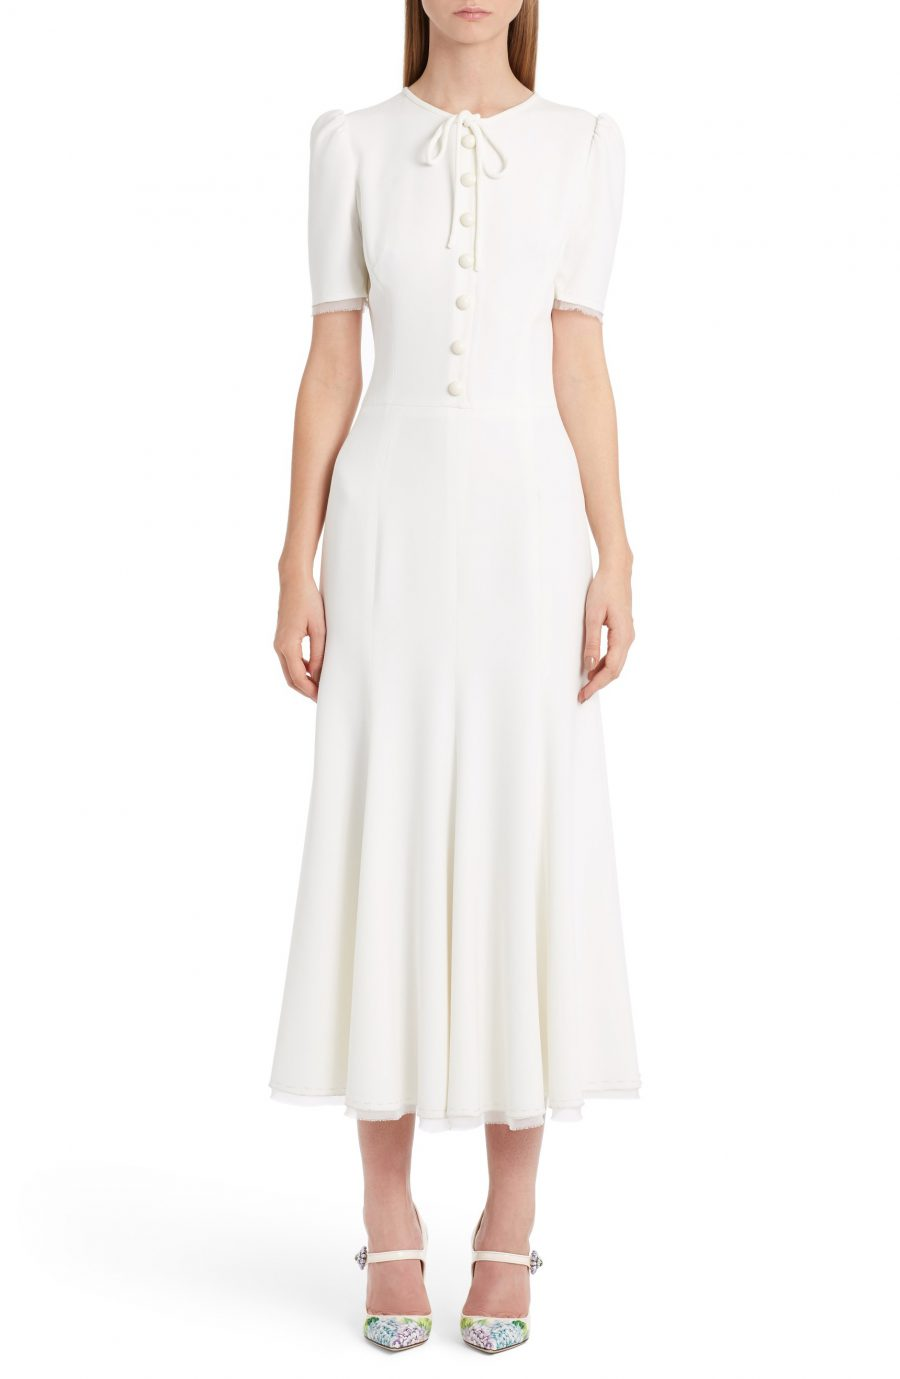 D&G dress in white